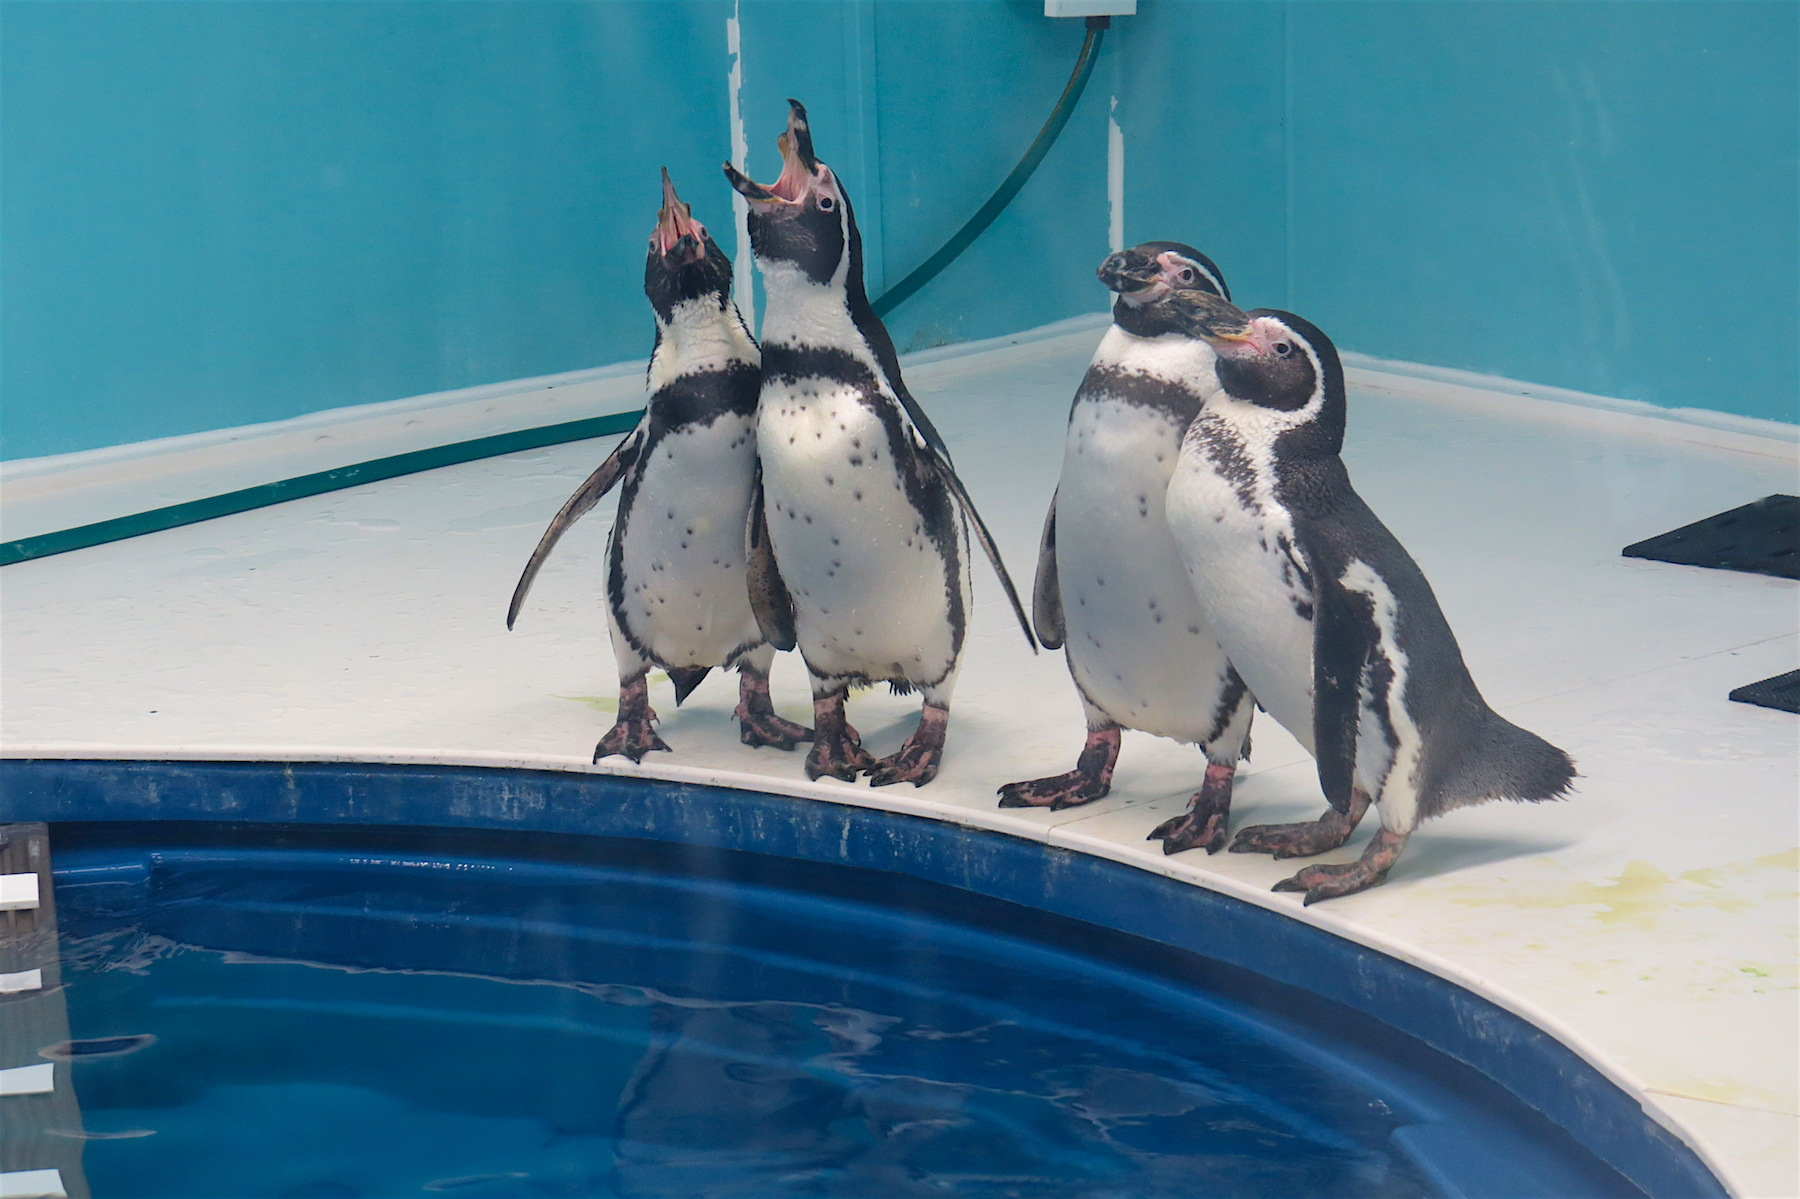 The Aquarium of Niagara's seven Humboldt penguins will have a new home starting in the spring of 2018, thanks to the efforts of a successful fundraising campaign. With new accommodations in place, the venue will seek to add more penguins to the downtown Niagara Falls facility.